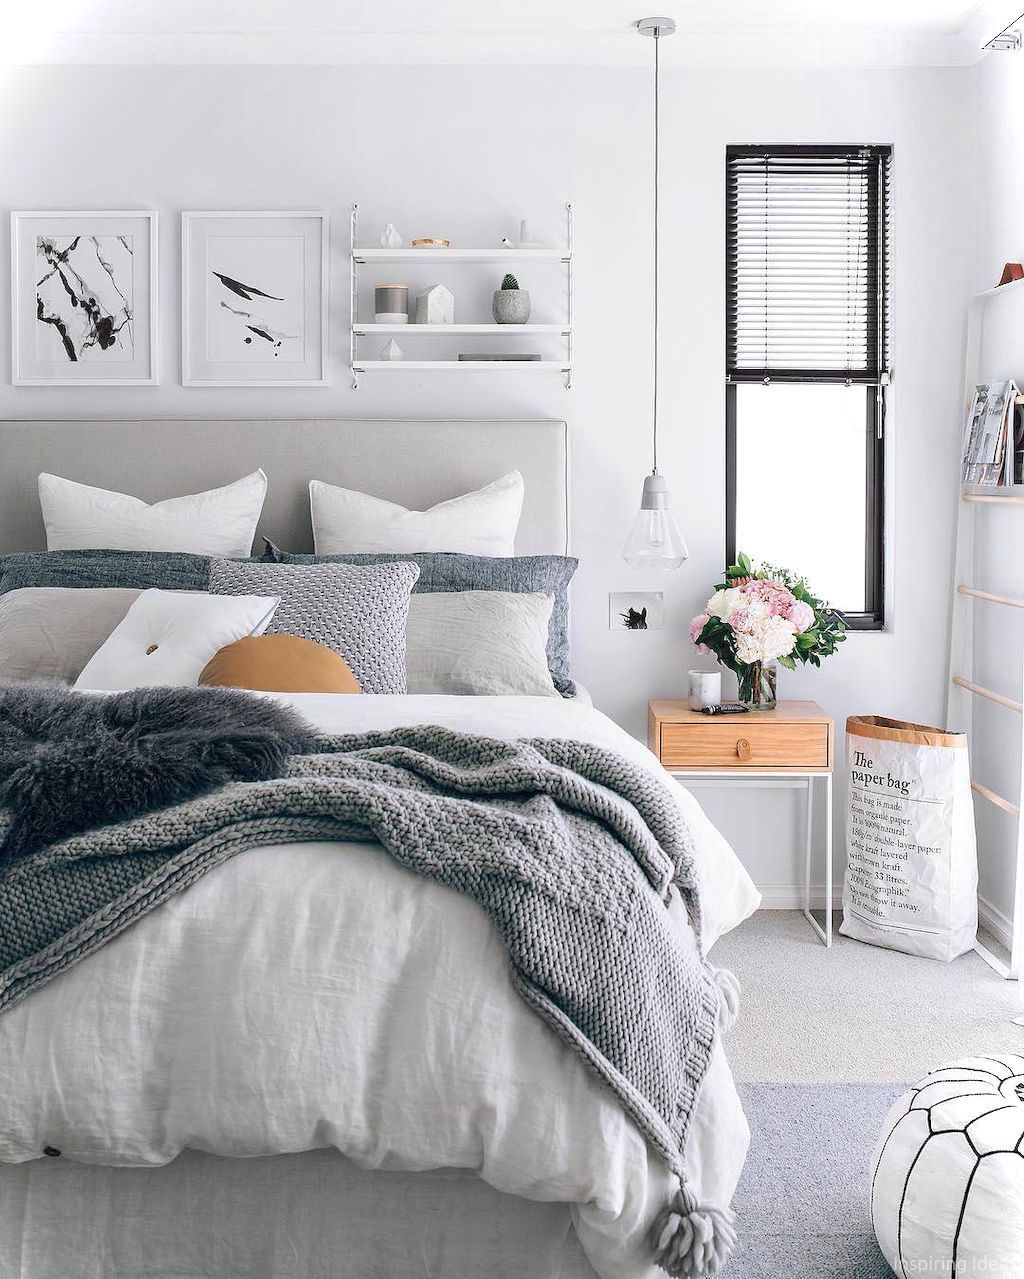 Gray White Bedding Cozy Comfortable Monochromatic Bedroom Decor